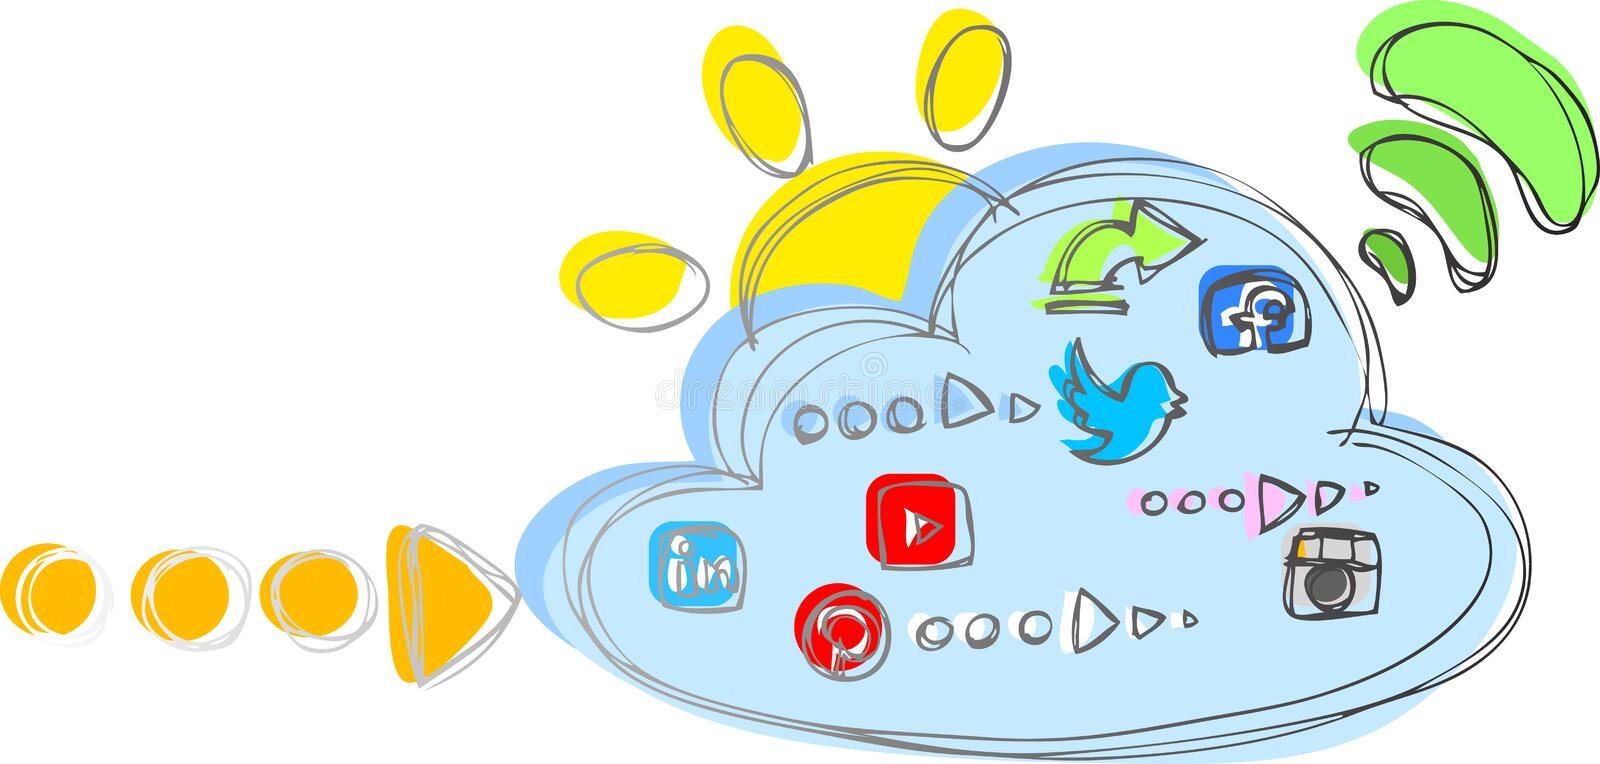 Social network icons and cloud. Cloud with internet and social network icons. Digital vector illustration stock illustration